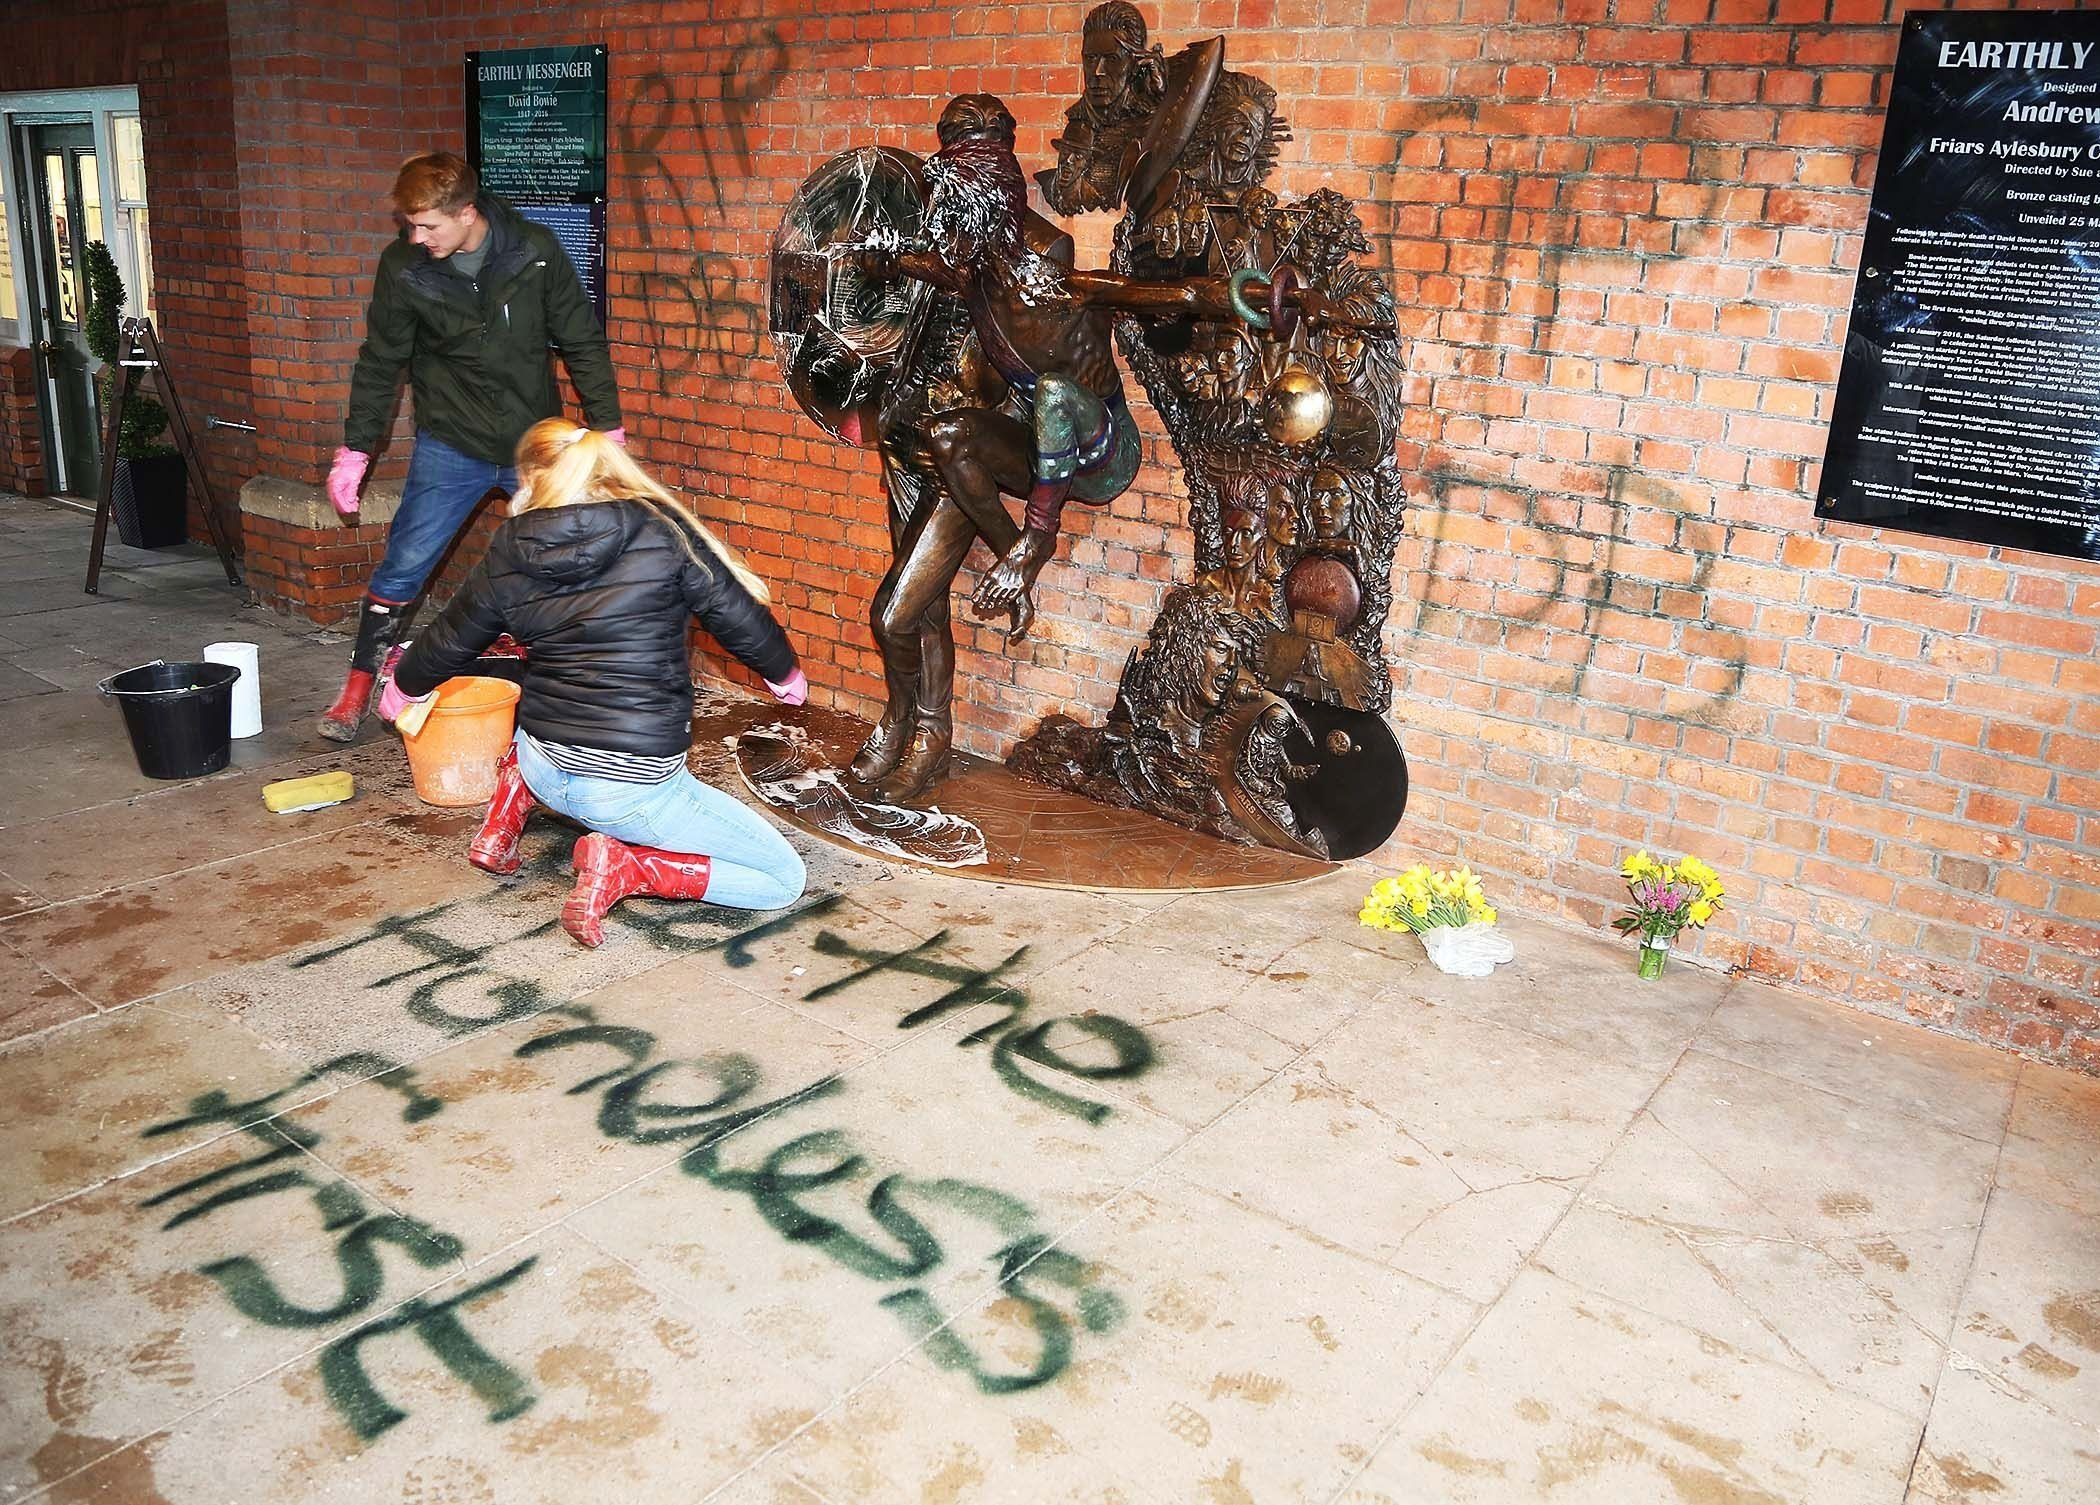 David Bowie Tribute Statue Vandalised With 'Feed The Homeless'